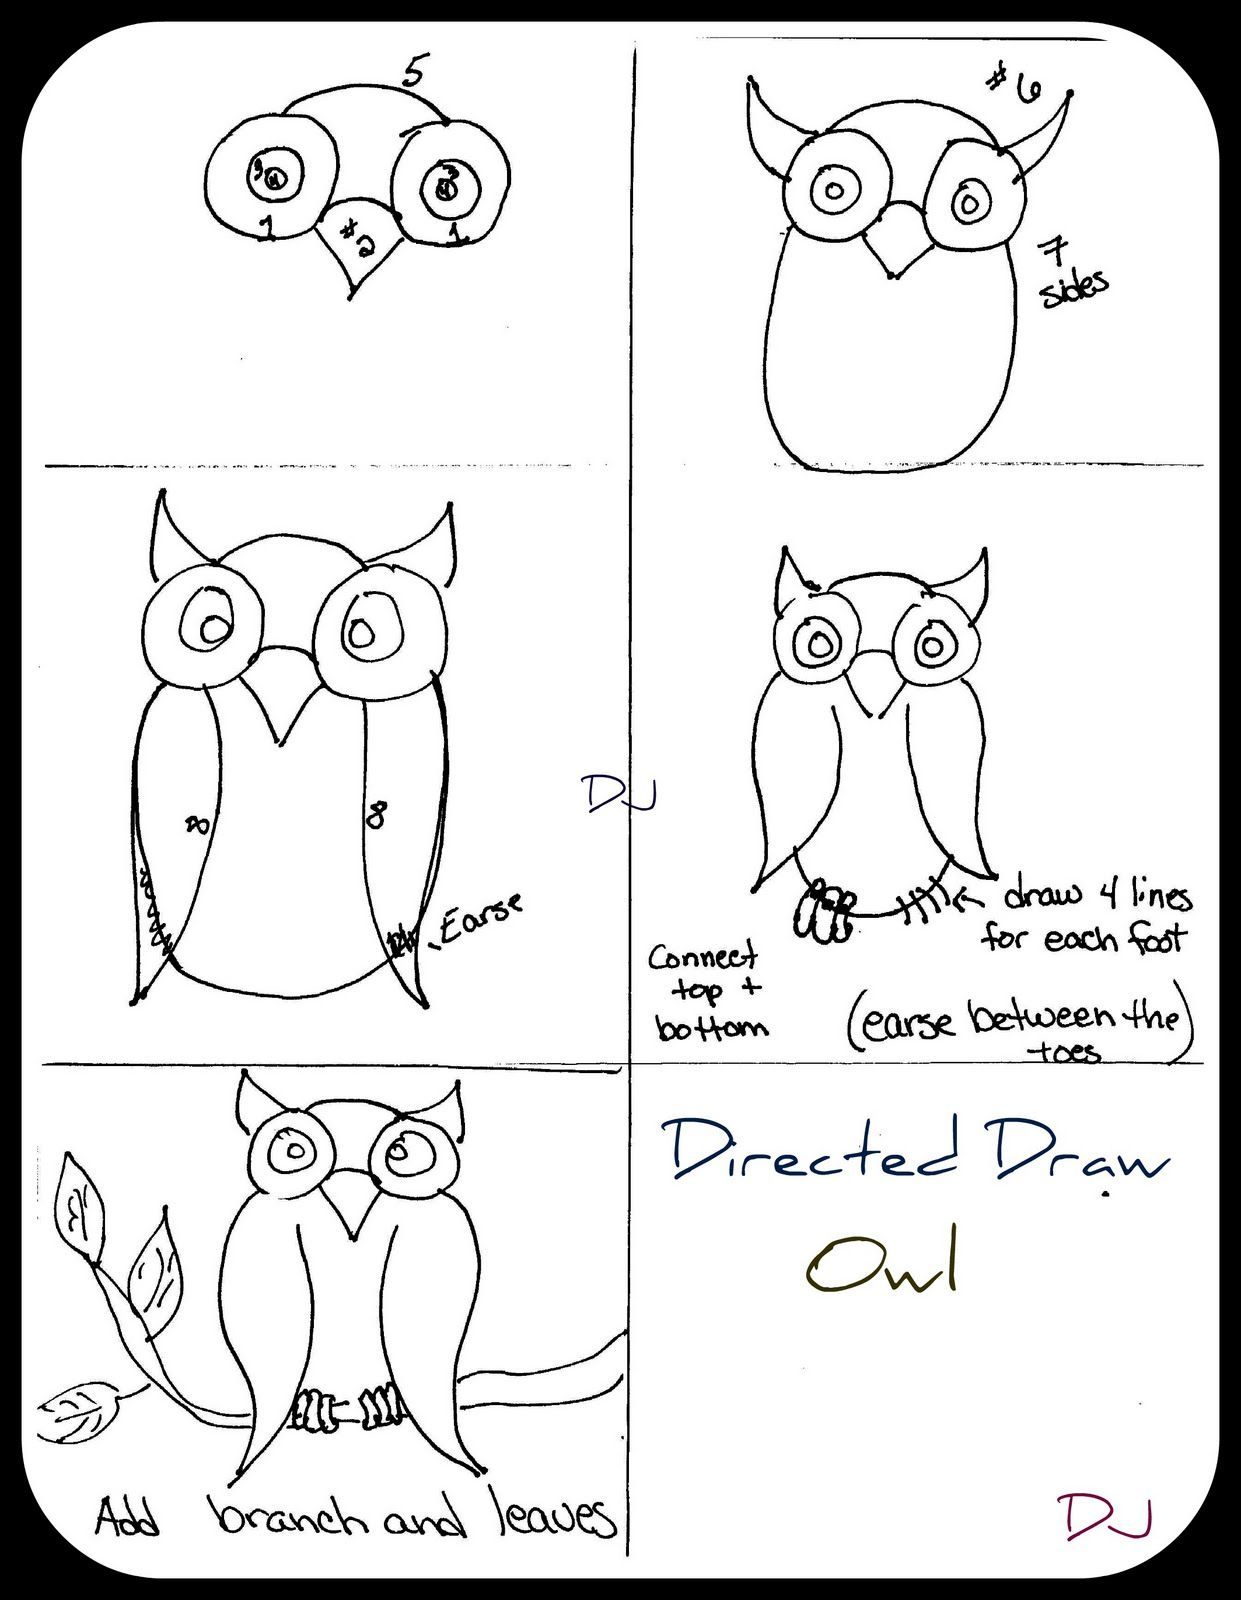 Upside Down Drawing For Kids